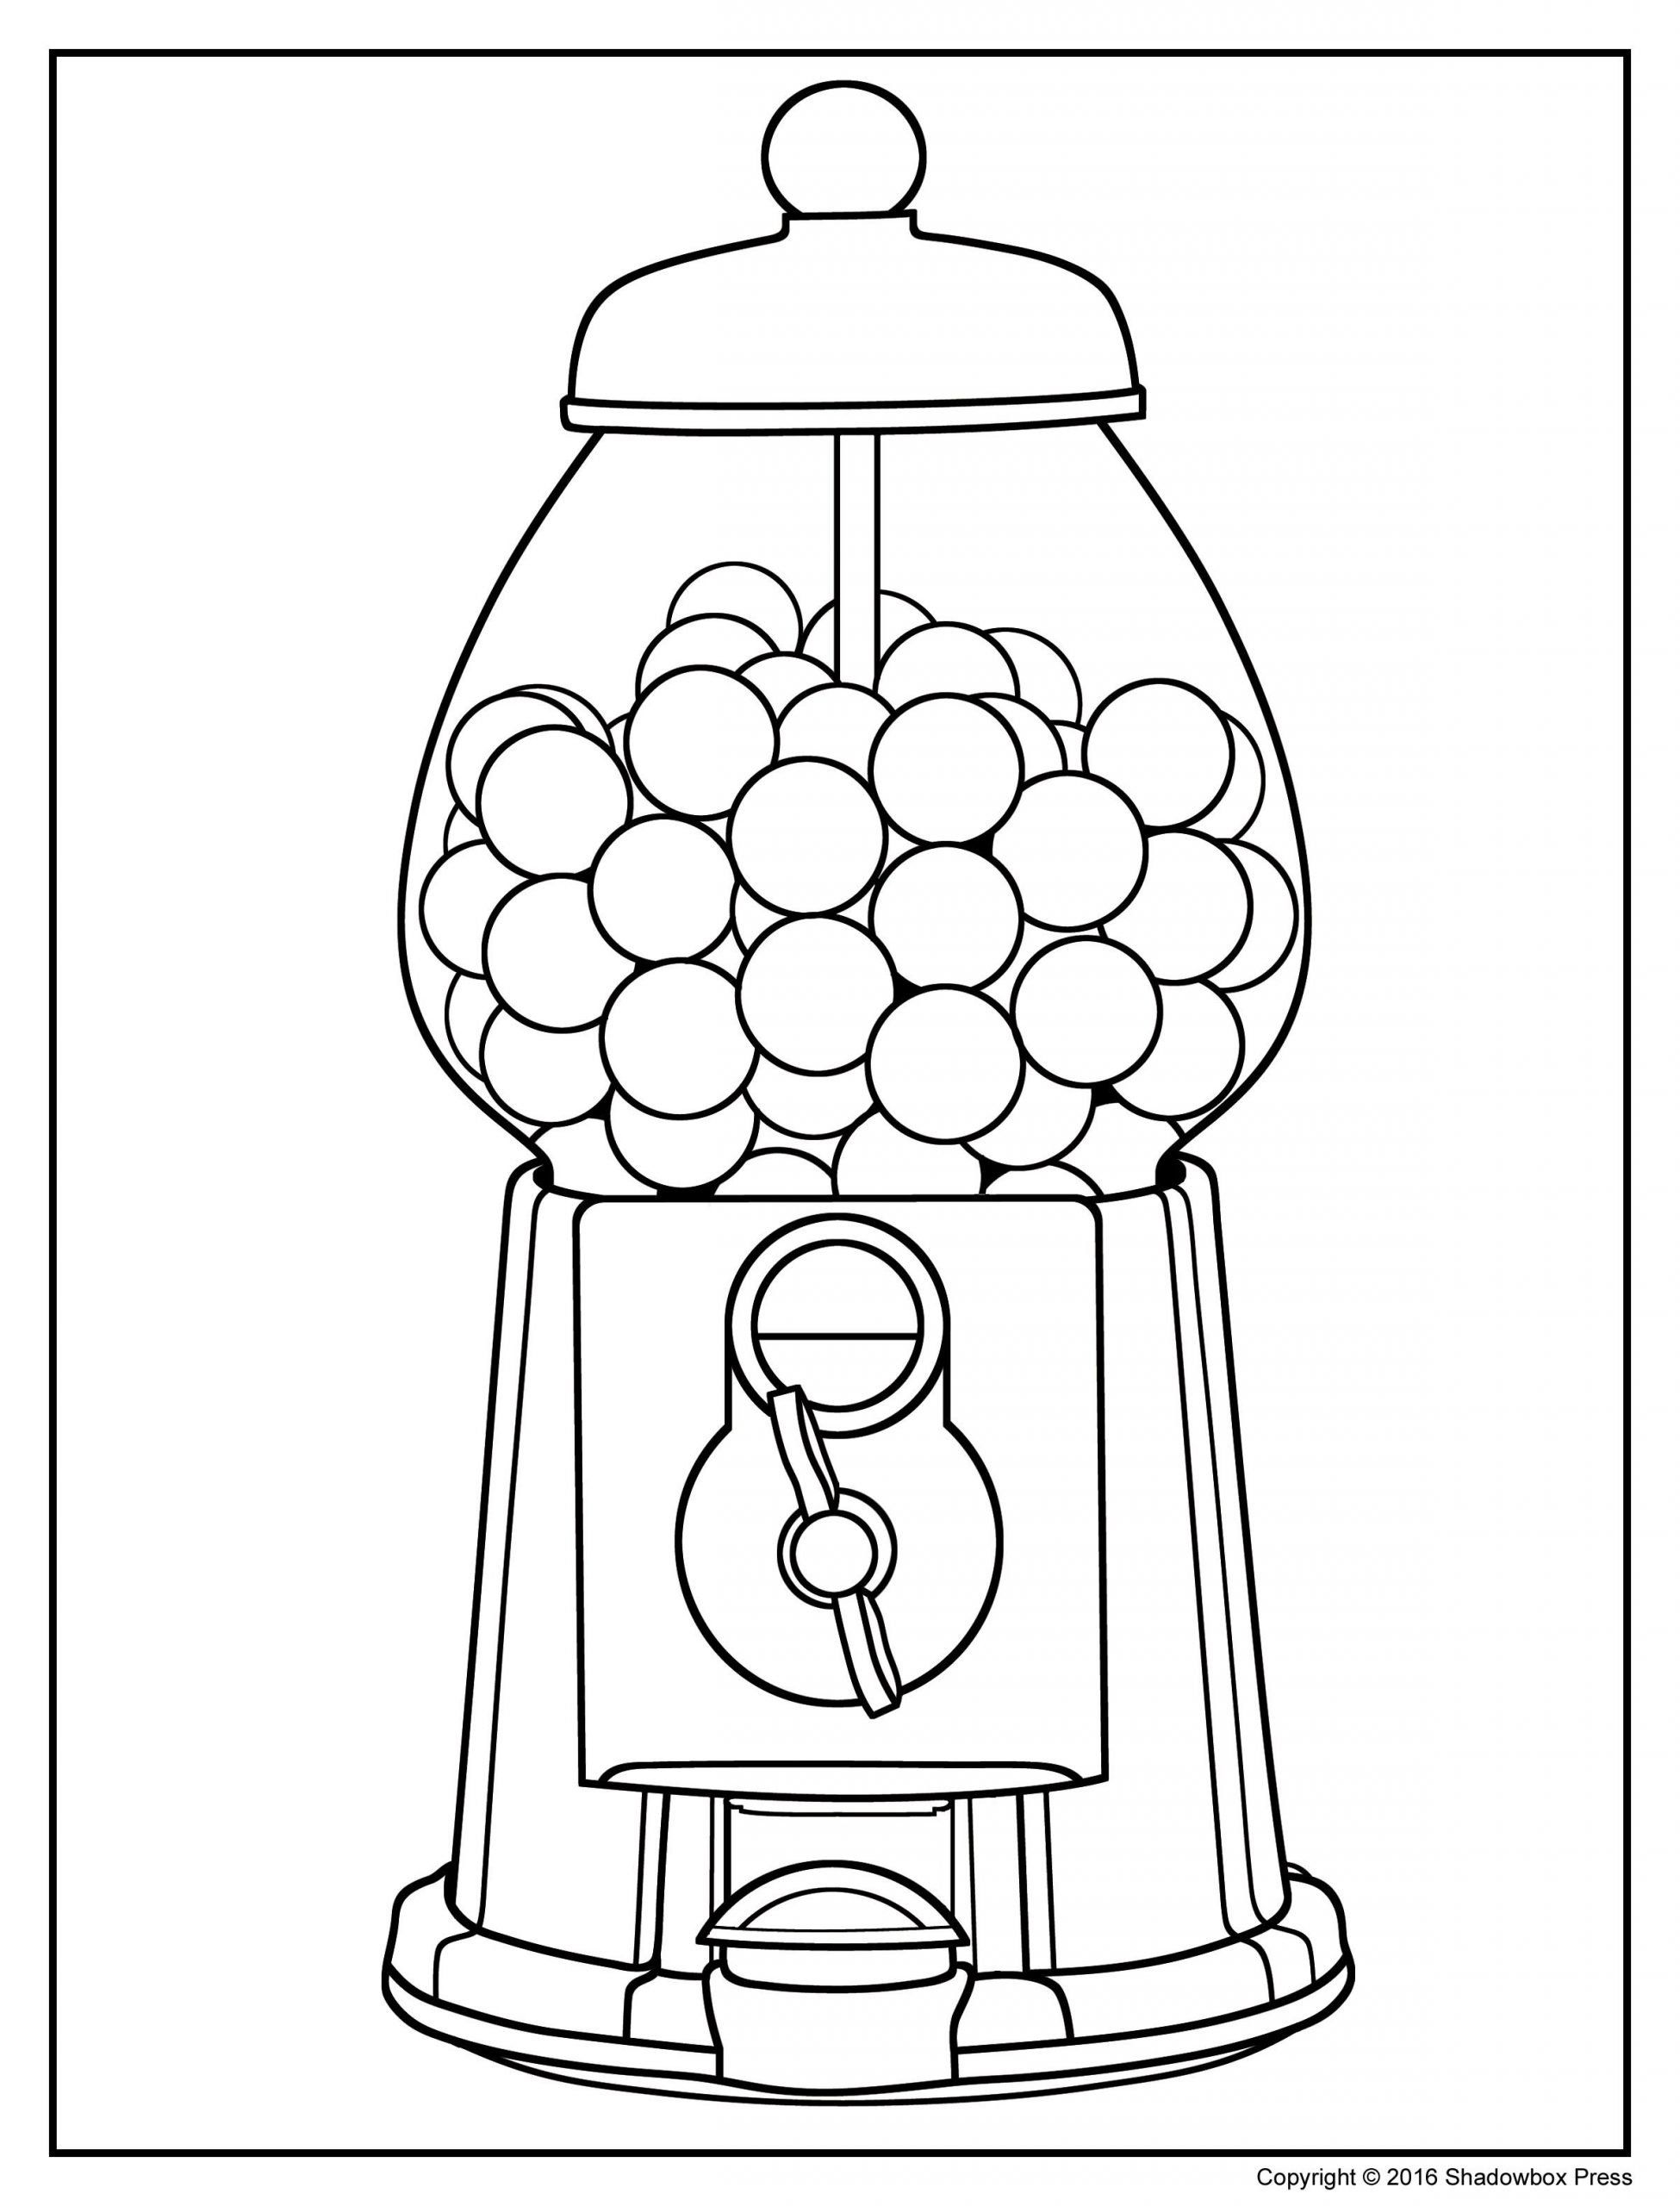 Free Downloadable Coloring Pages Free Downloadable Coloring Pages For Adults With Dementia Cute Coloring Pages Easy Coloring Pages Cool Coloring Pages